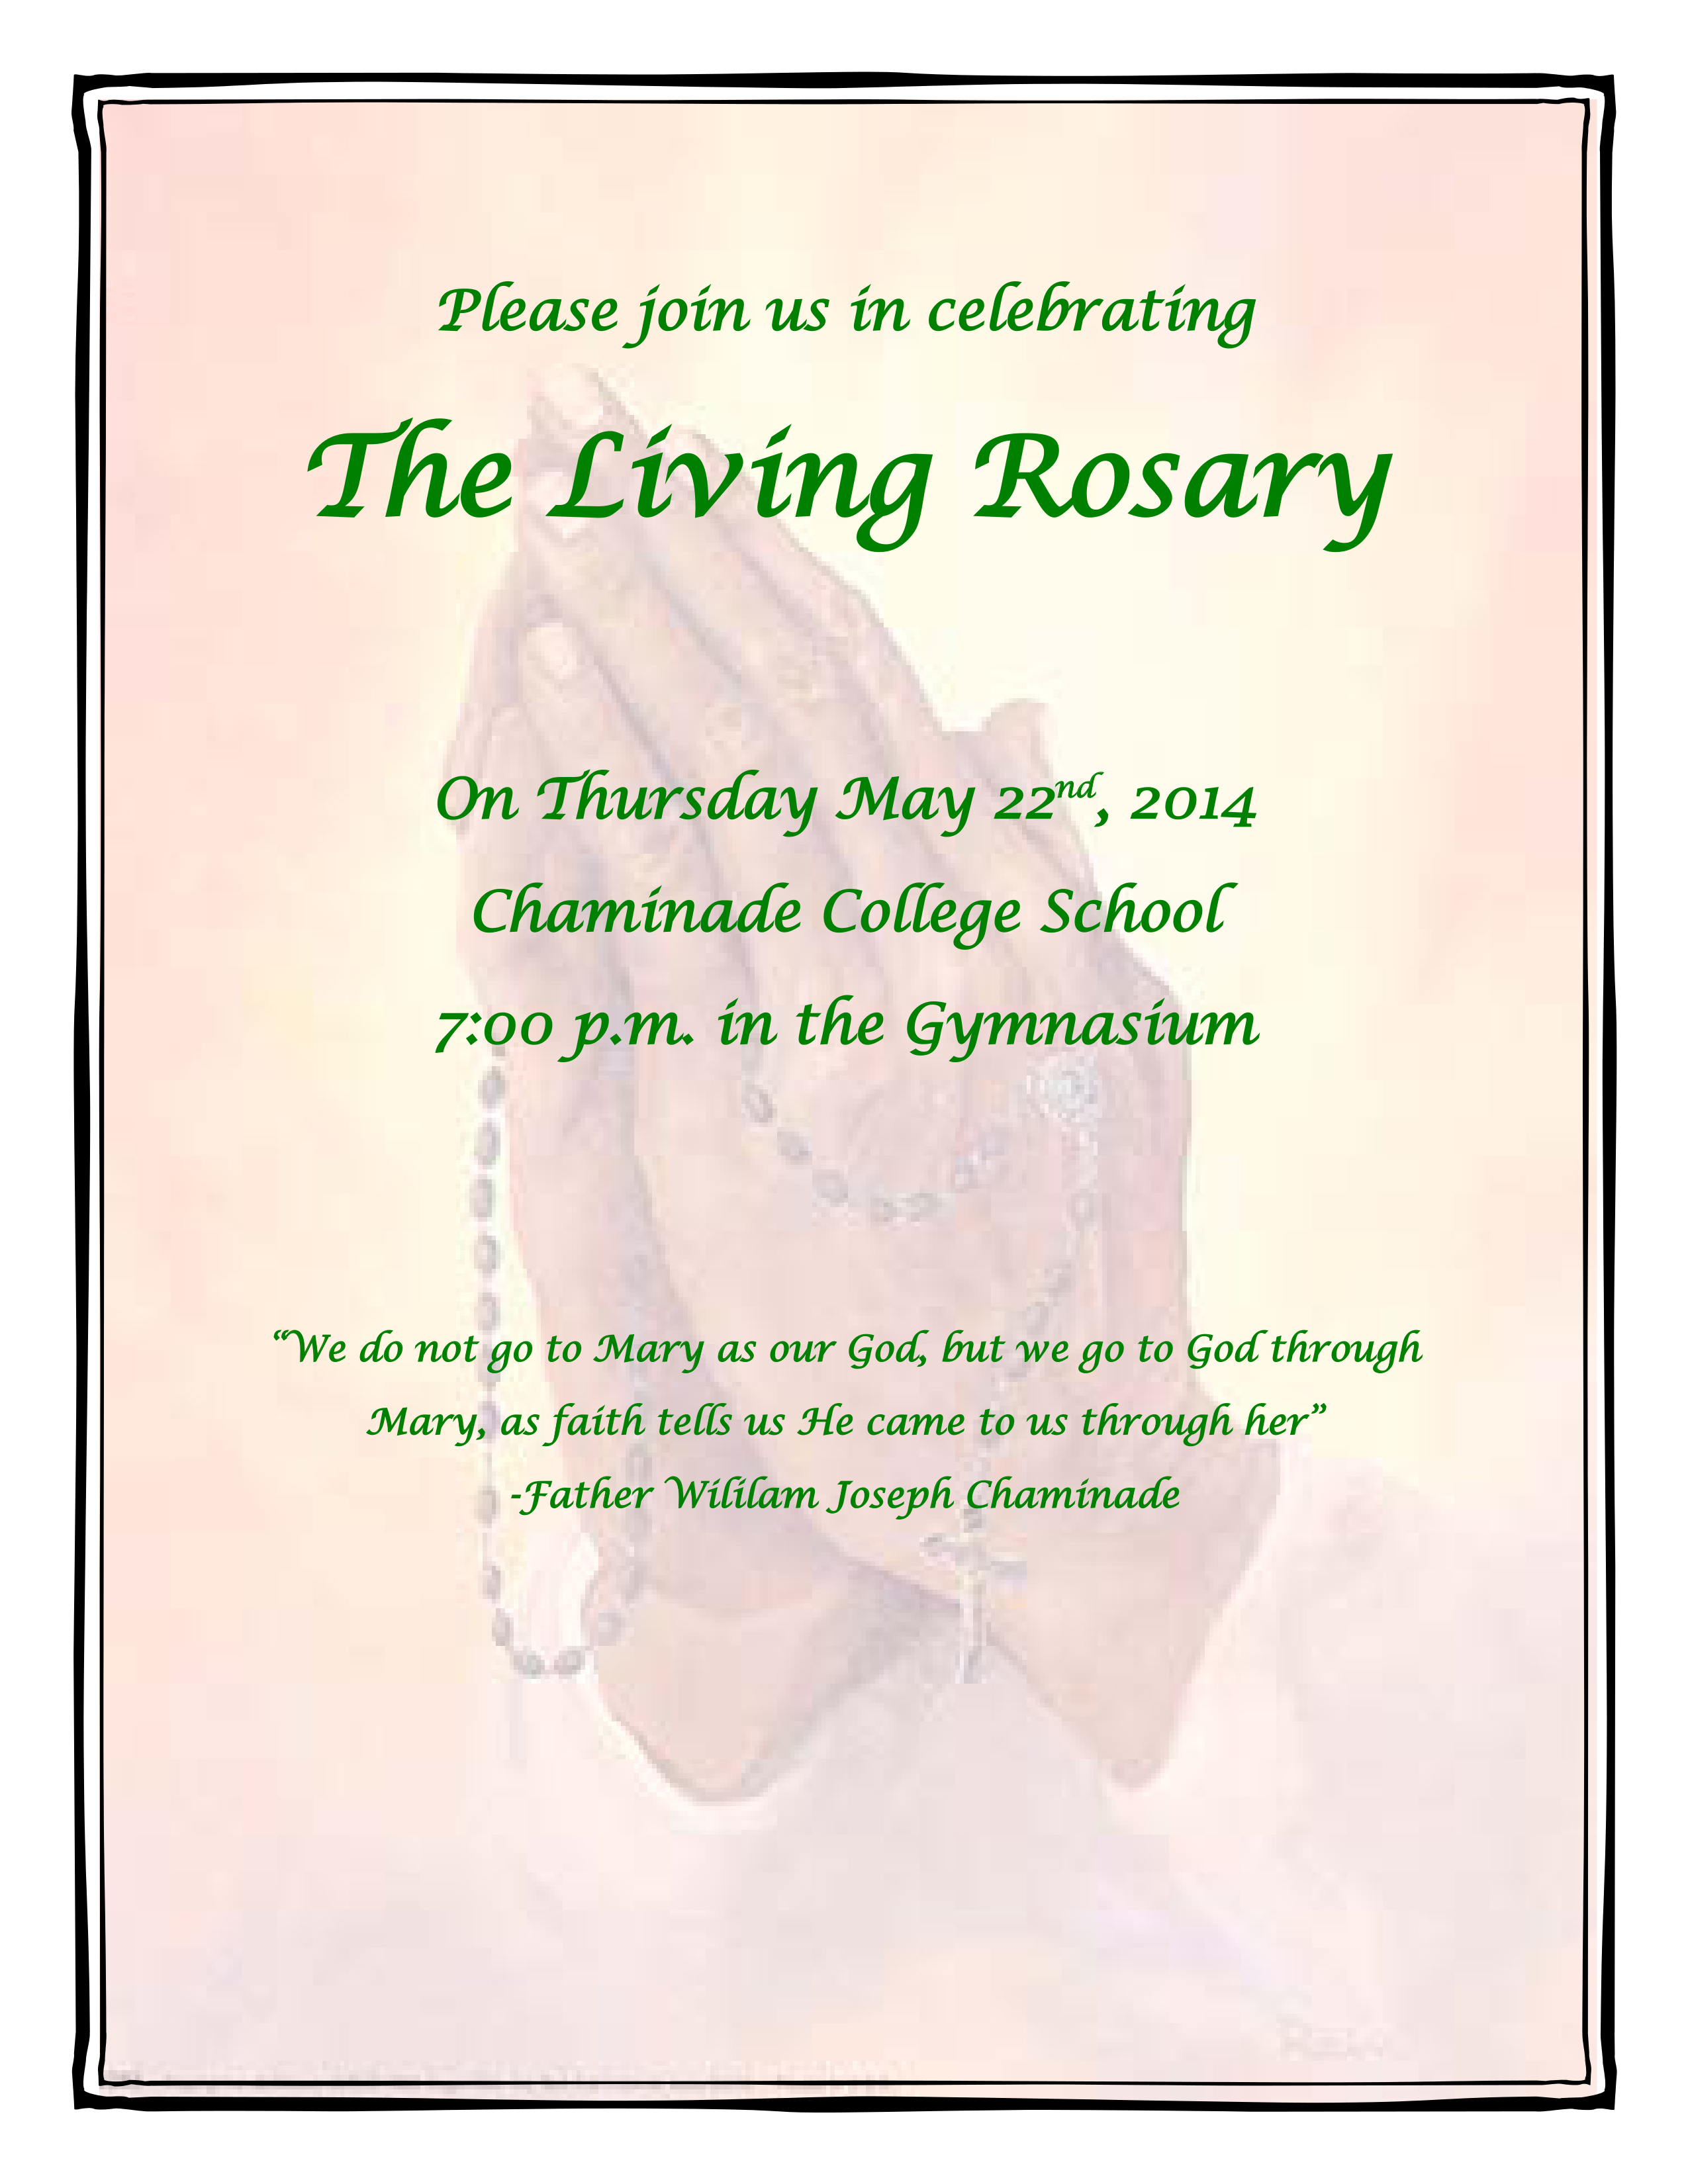 Invitation to the Living Rosary 2014.jpg